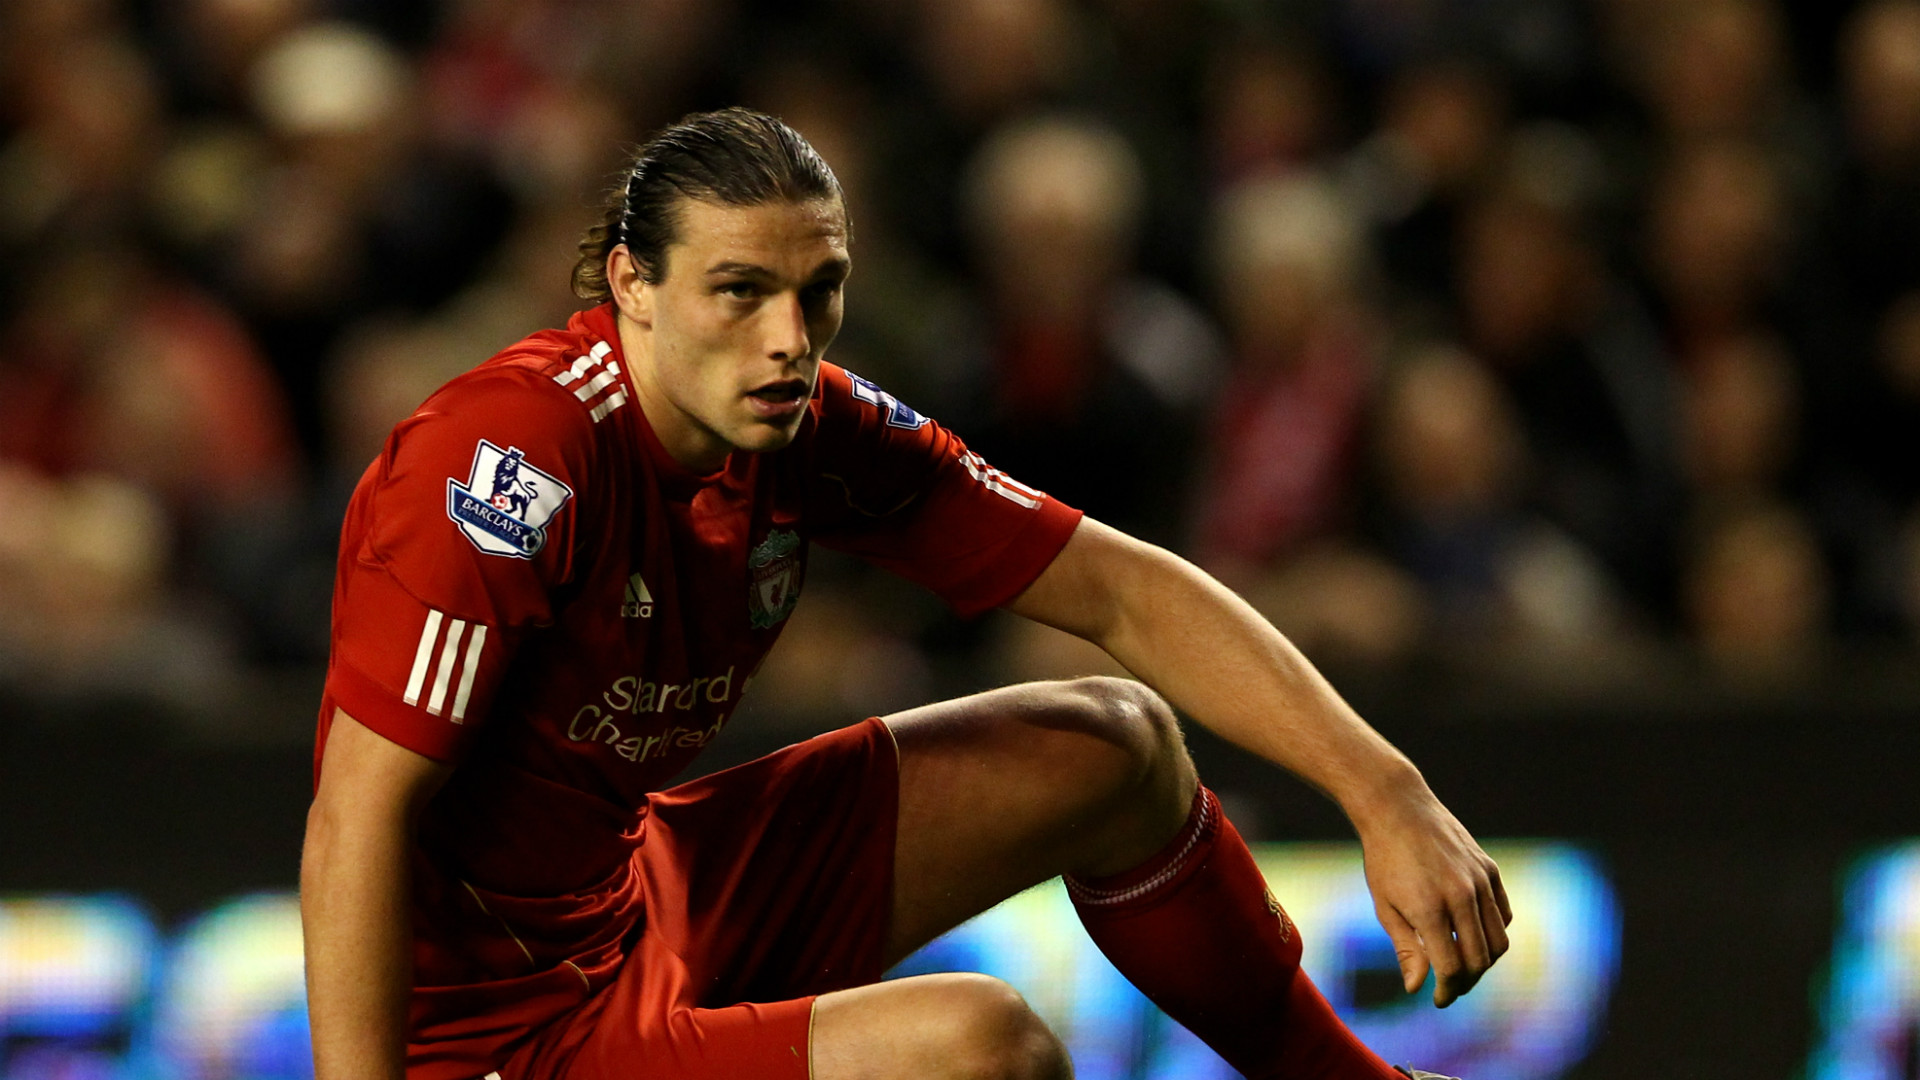 Andy Carroll I had to Google who Liverpool s players were